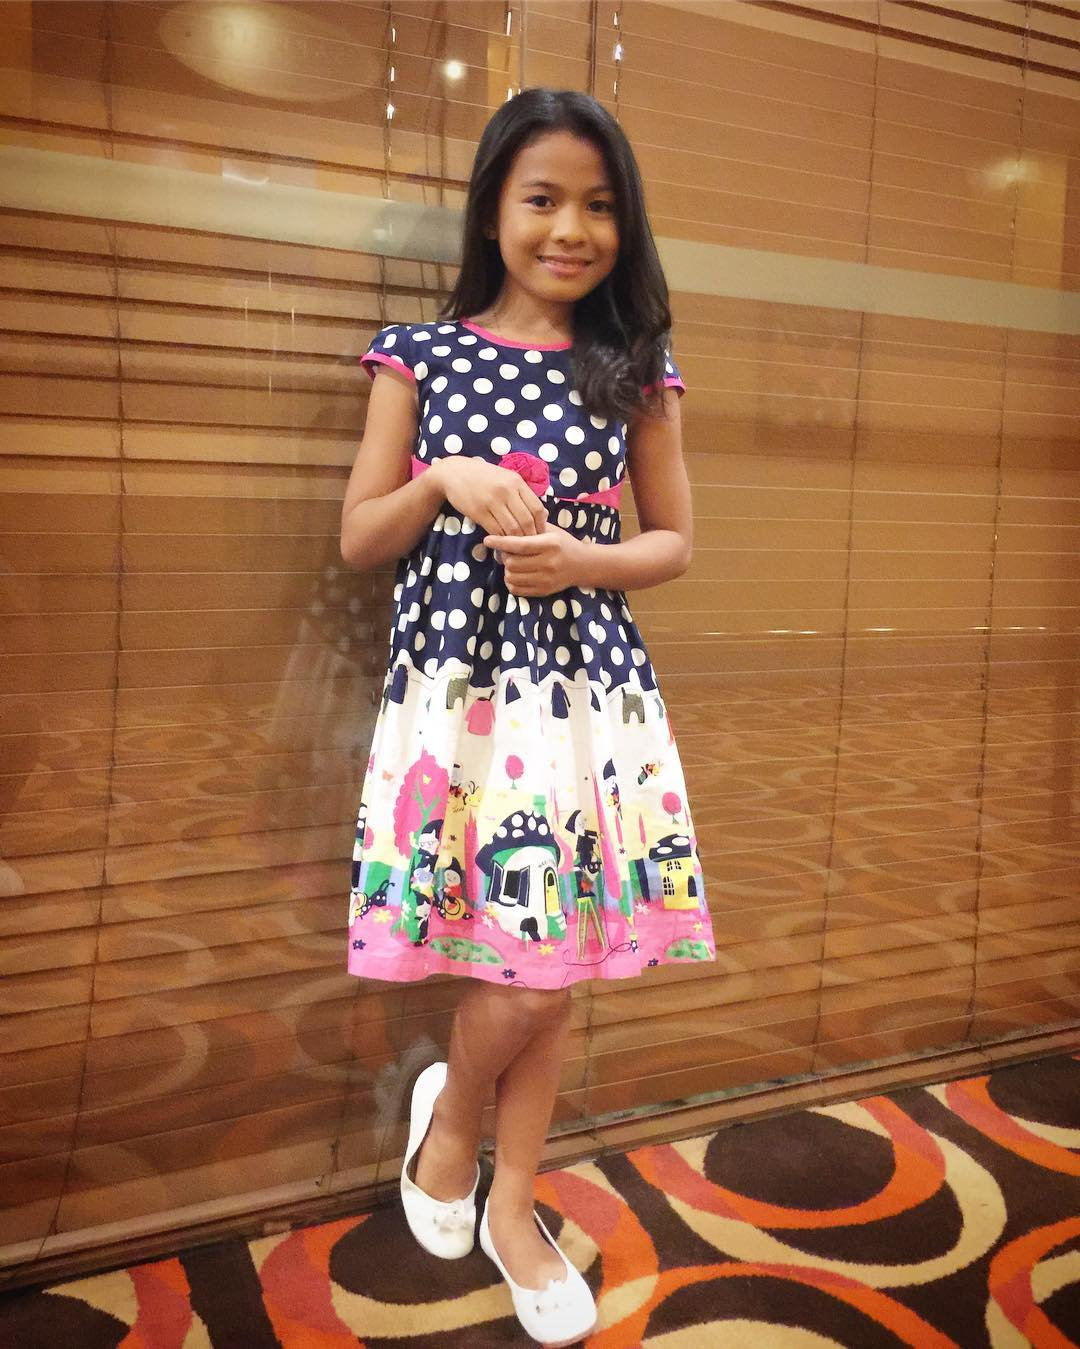 LOOK: Lyca continuously shocks the online world with her Instagram photos!